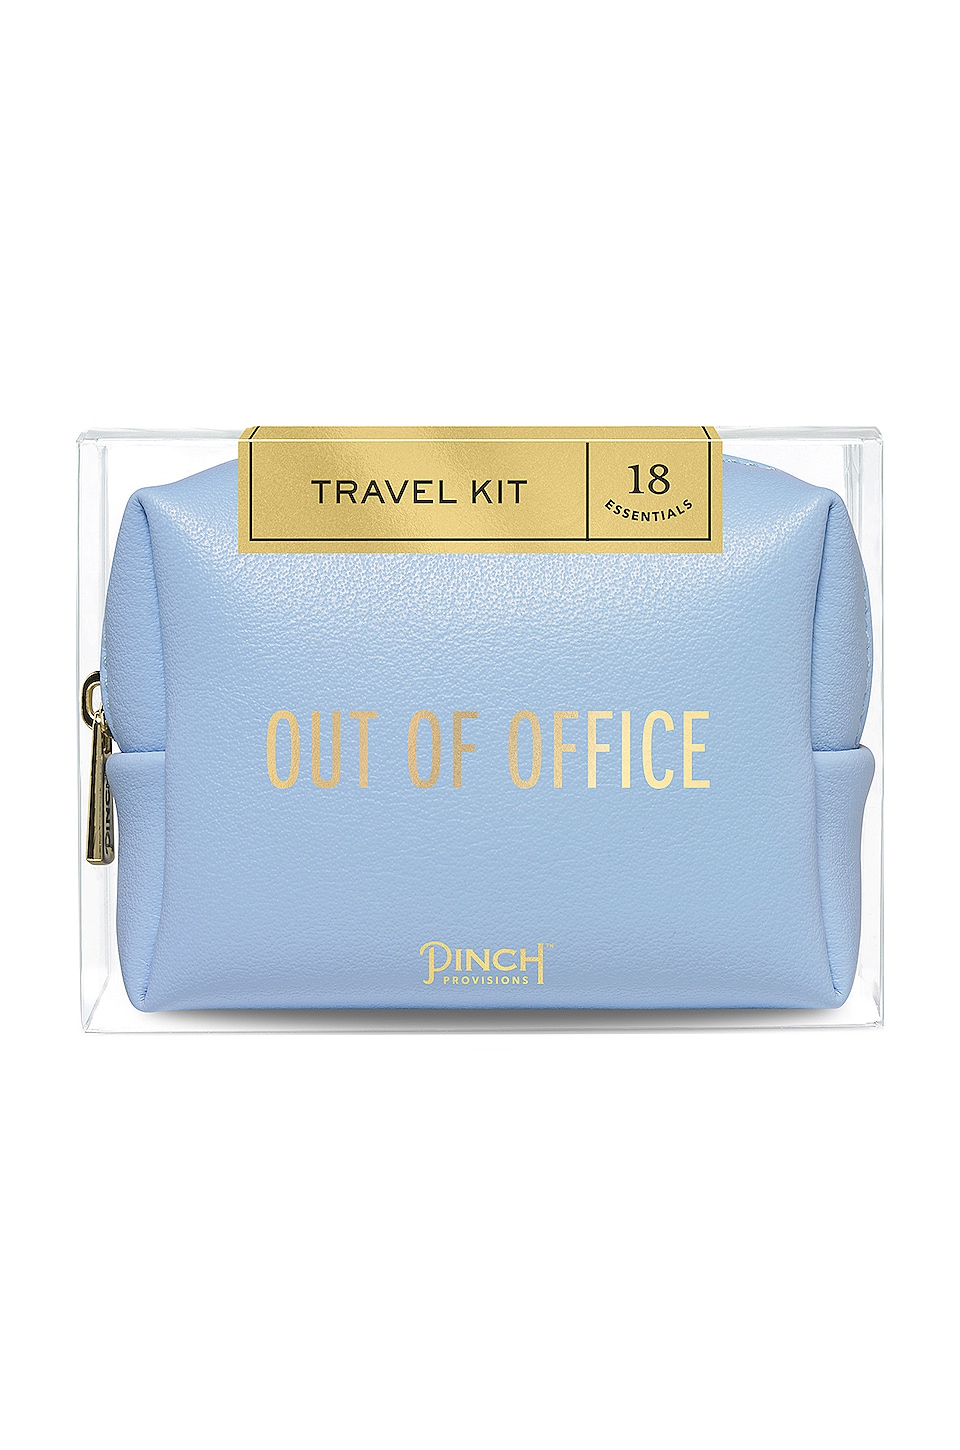 Pinch Provisions Out of Office Travel Kit